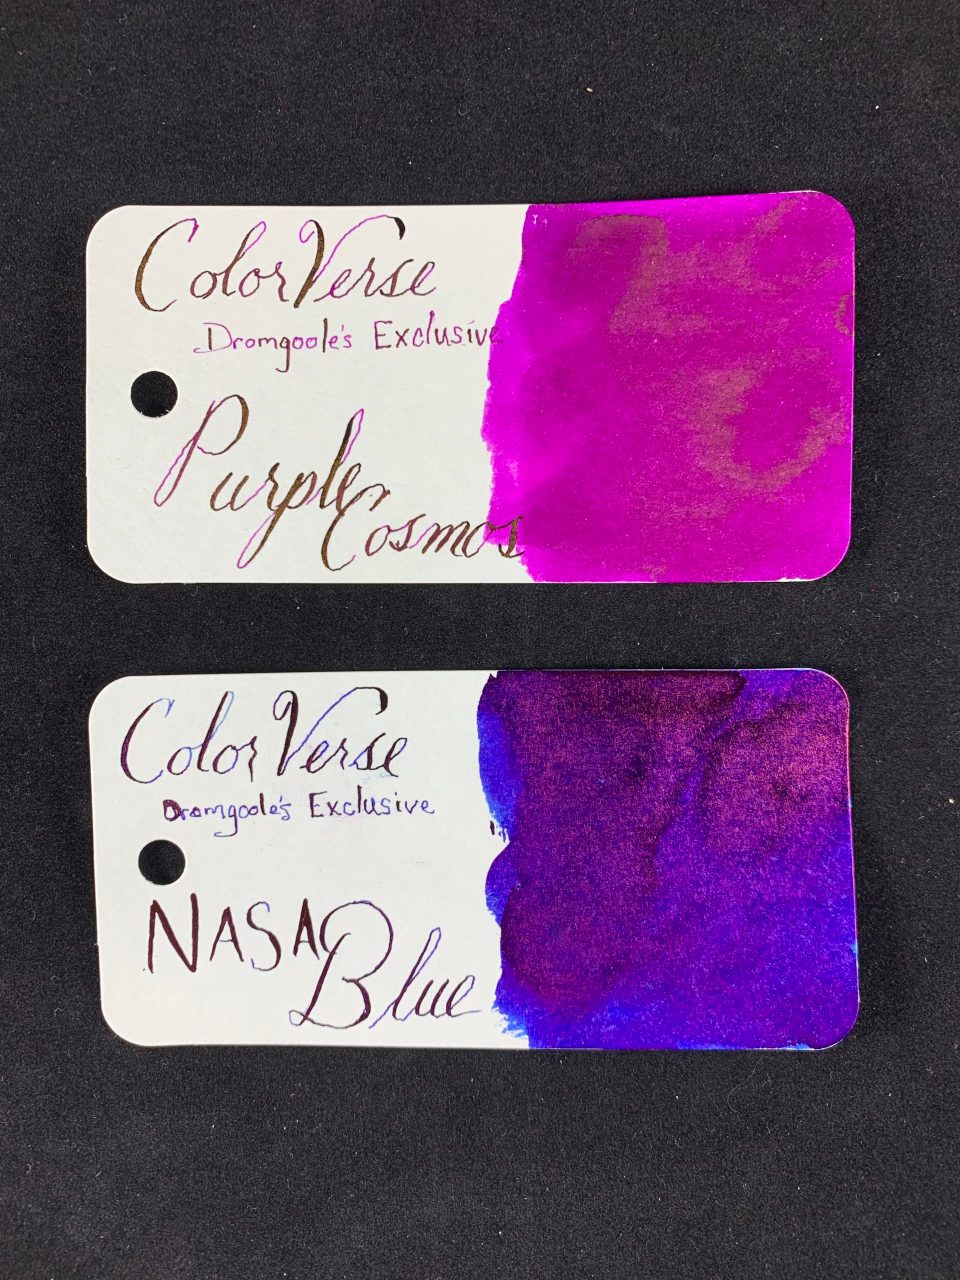 Ink Review: ColorVerse Purple Cosmo and NASA Blue